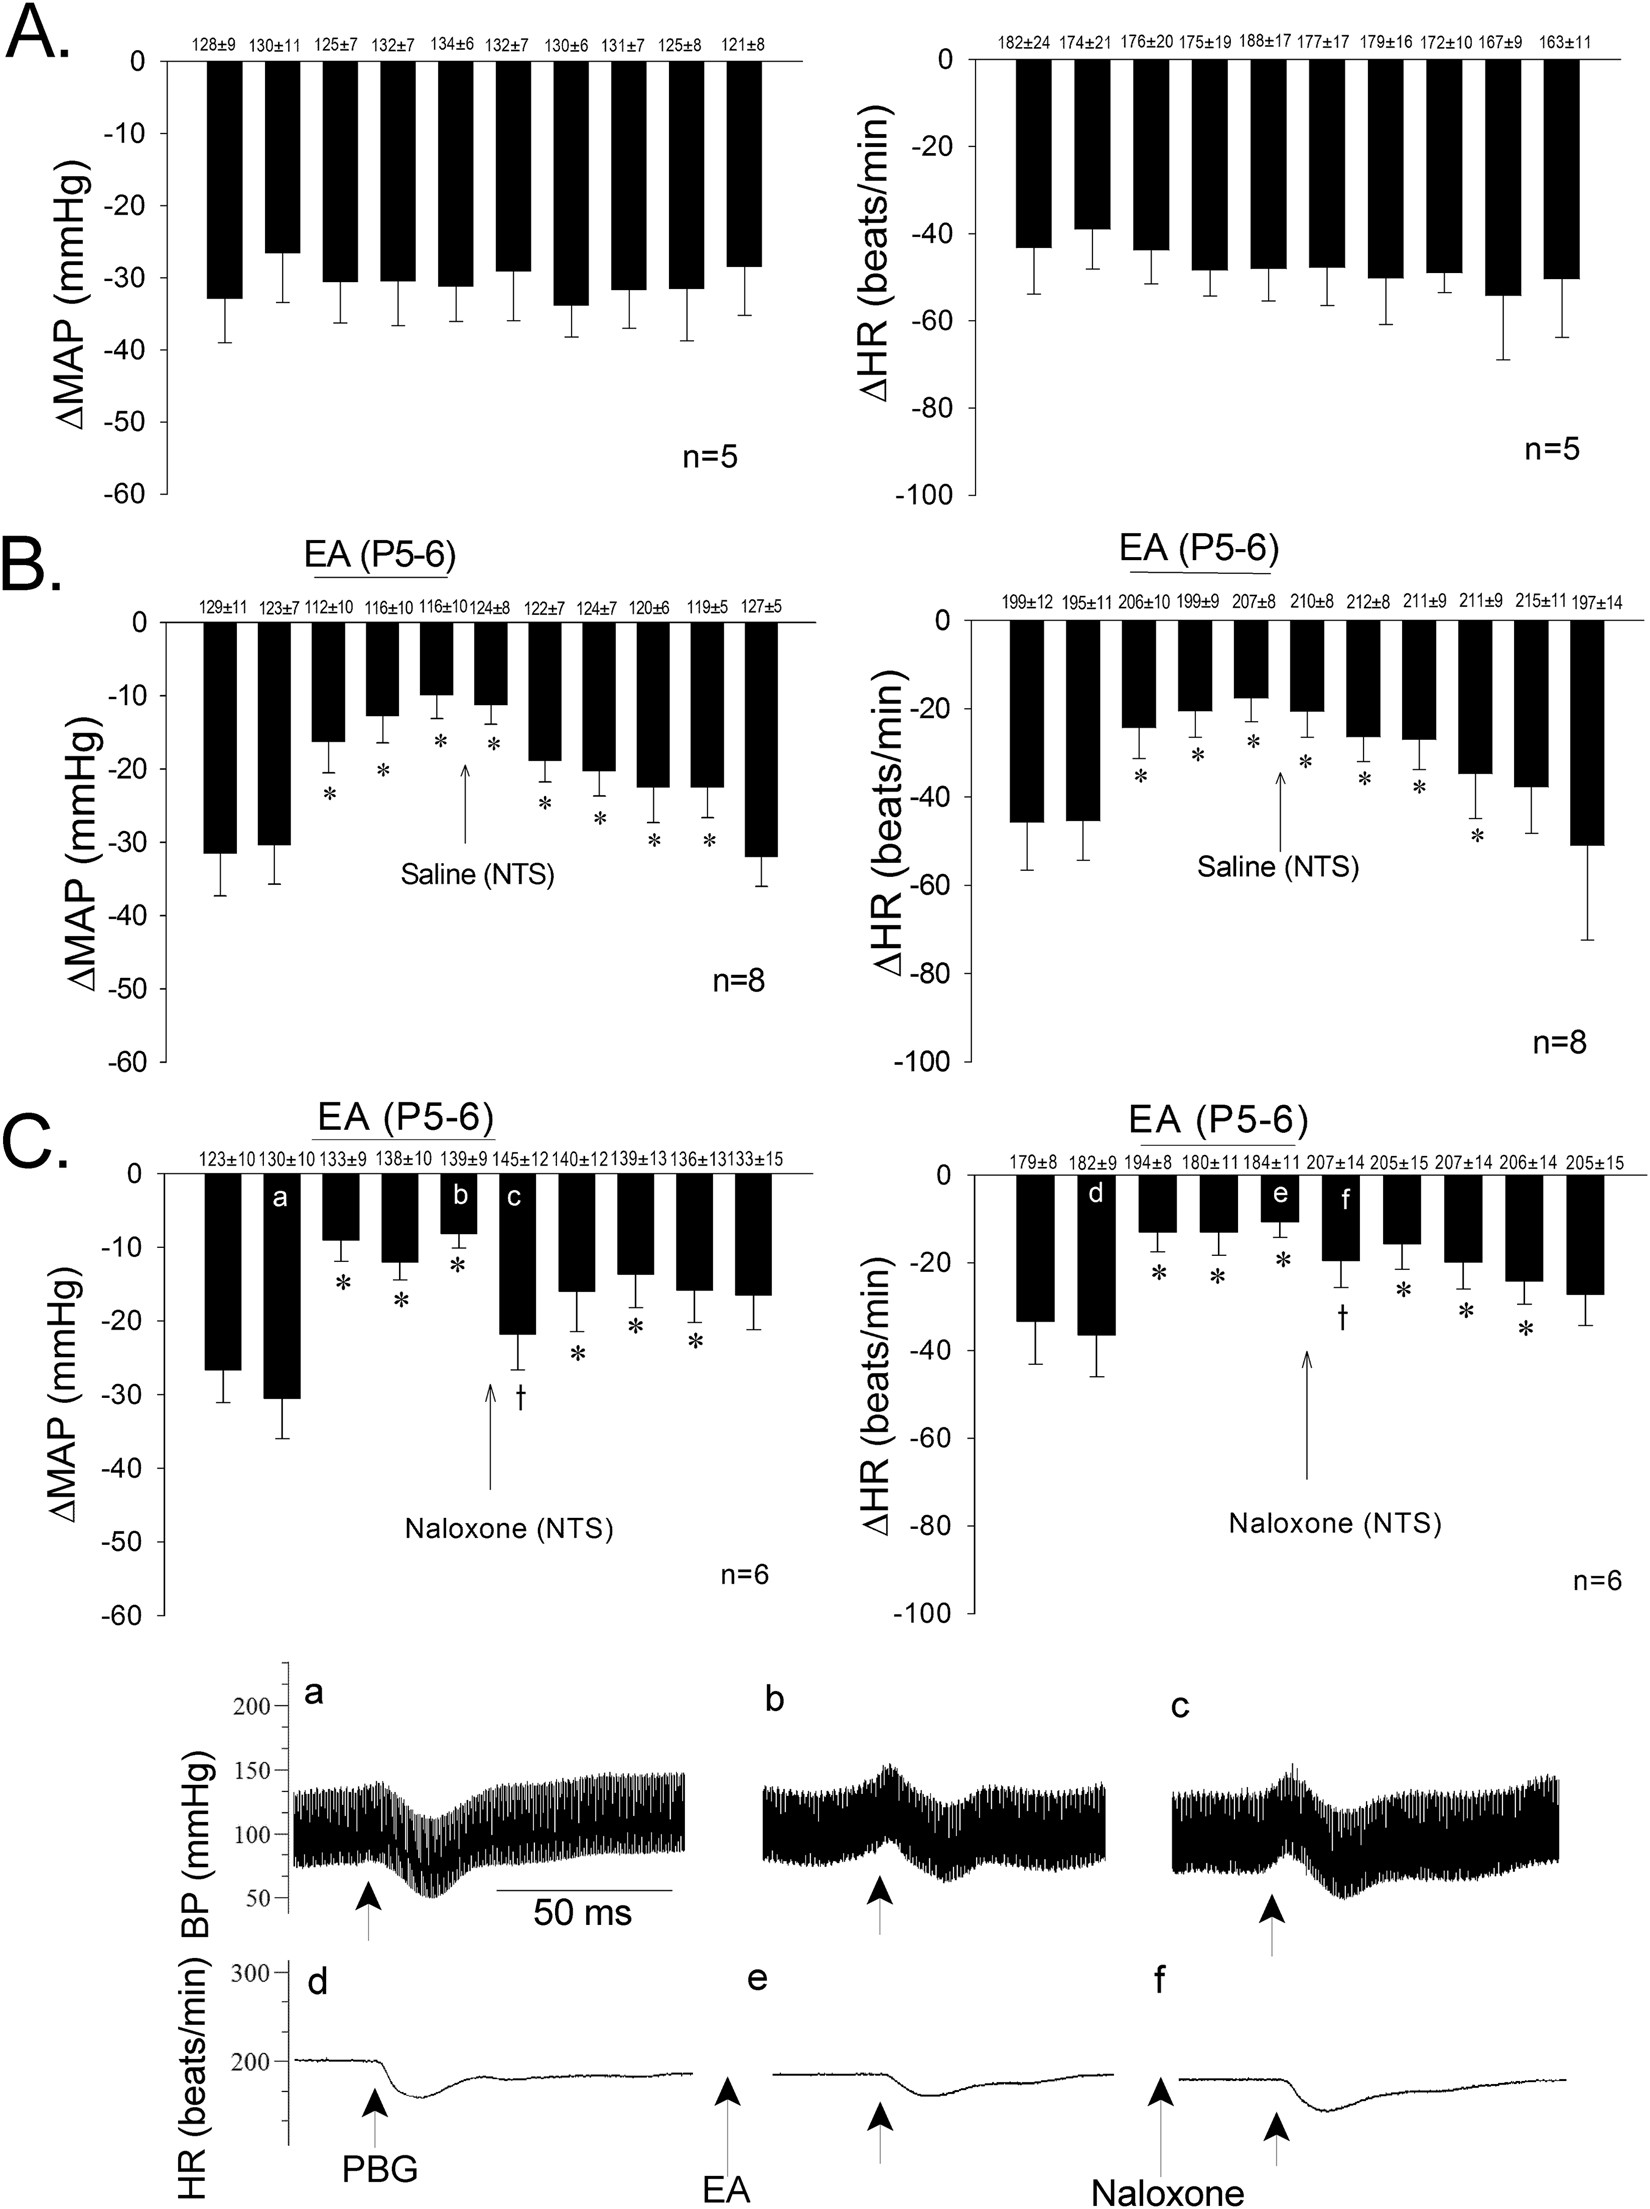 Modulation Of Neurally Mediated Vasodepression And Bradycardia By Electroacupuncture Through Opioids In Nucleus Tractus Solitarius Scientific Reports